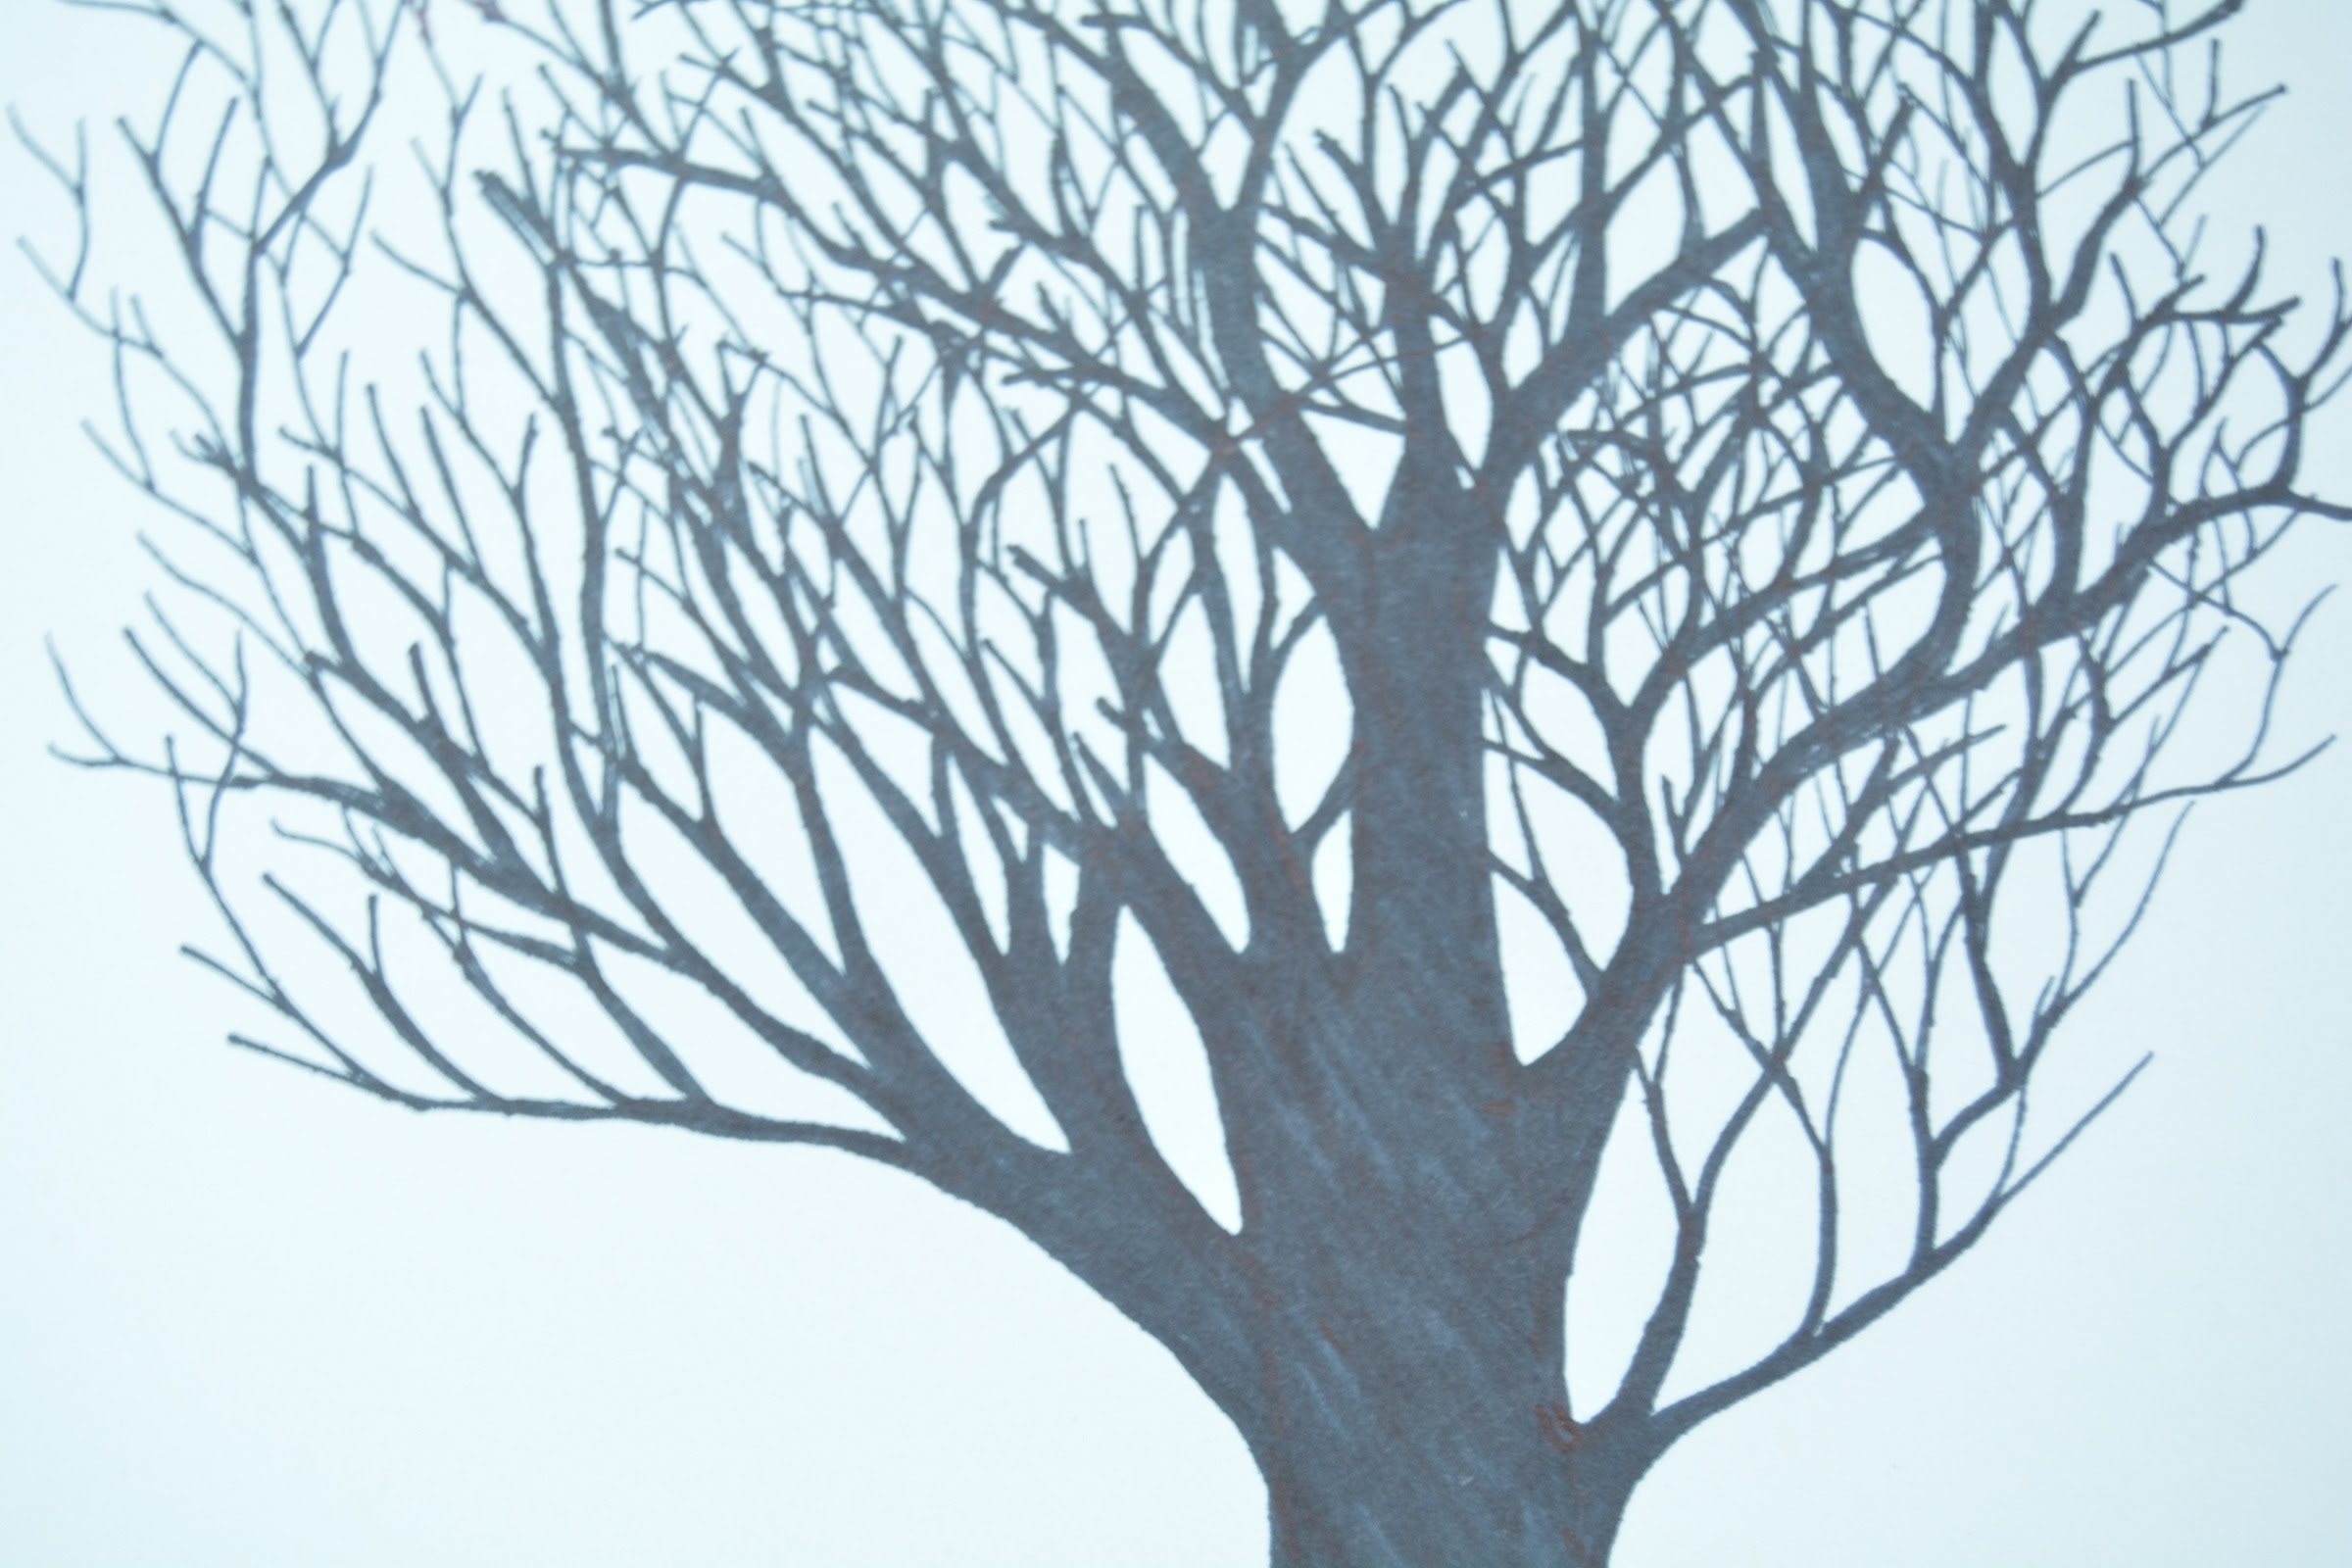 Tree With Branches Drawing at GetDrawings.com | Free for ...